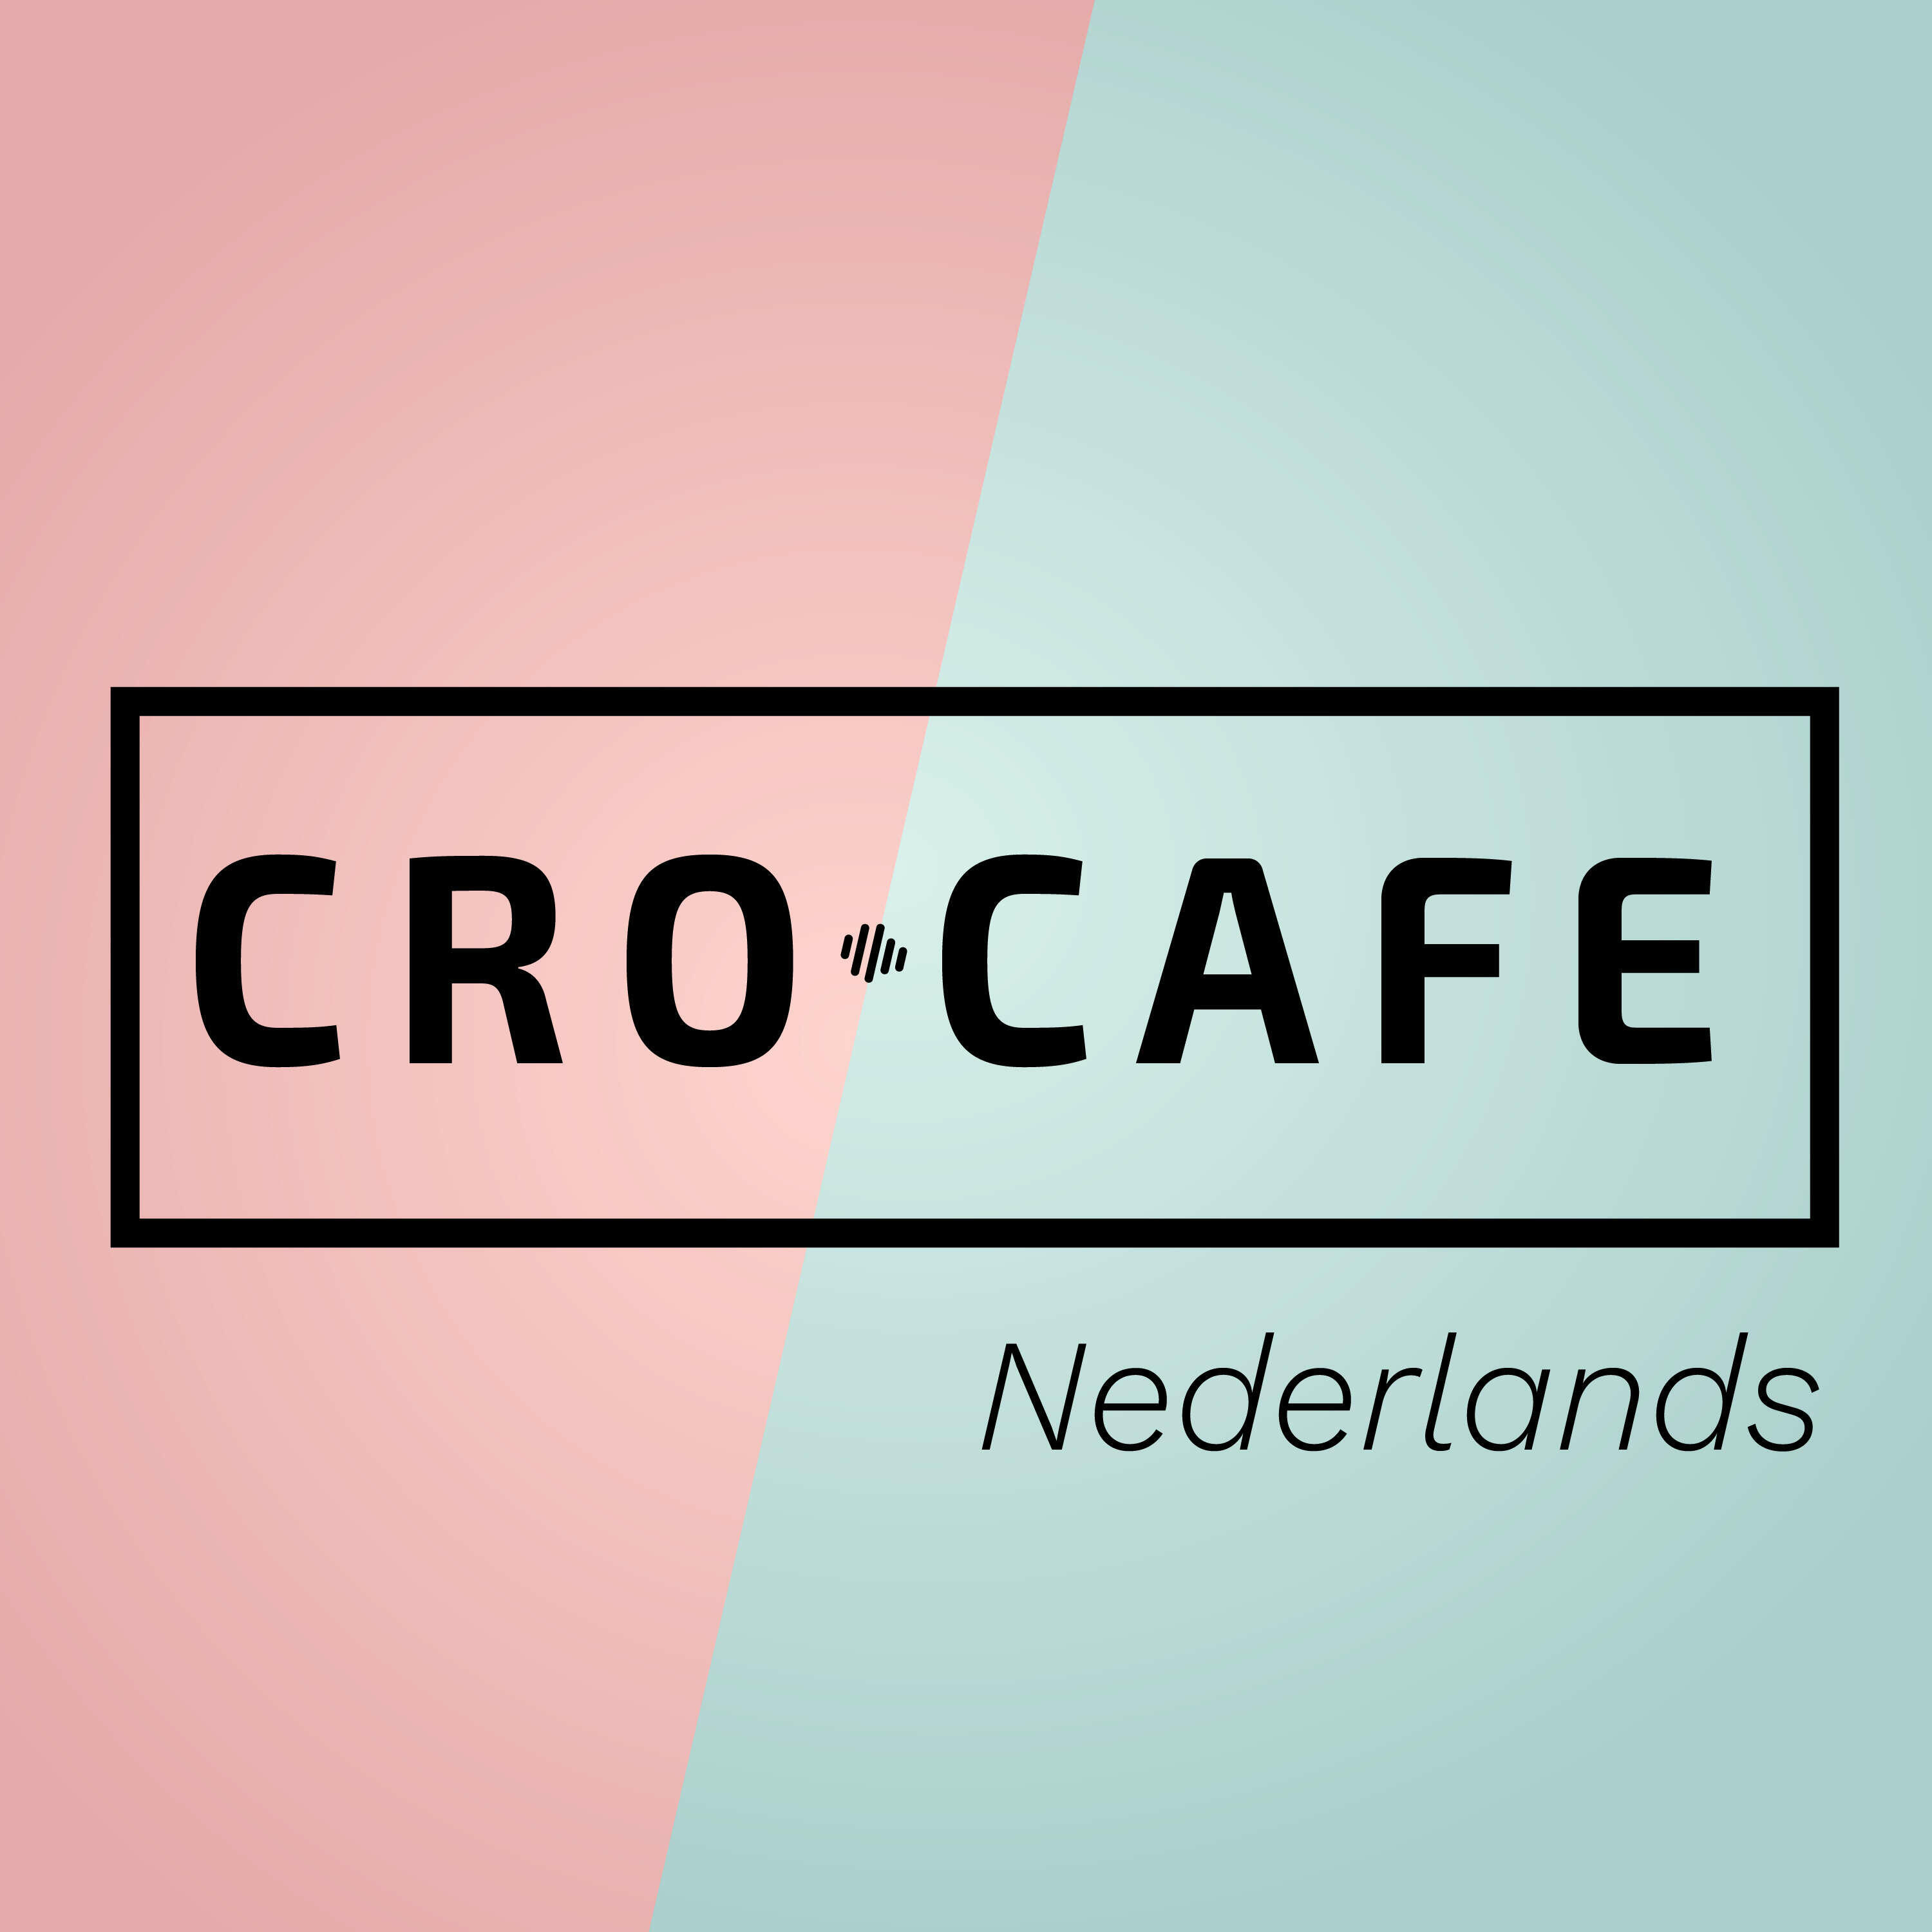 CRO.CAFE Nederlands